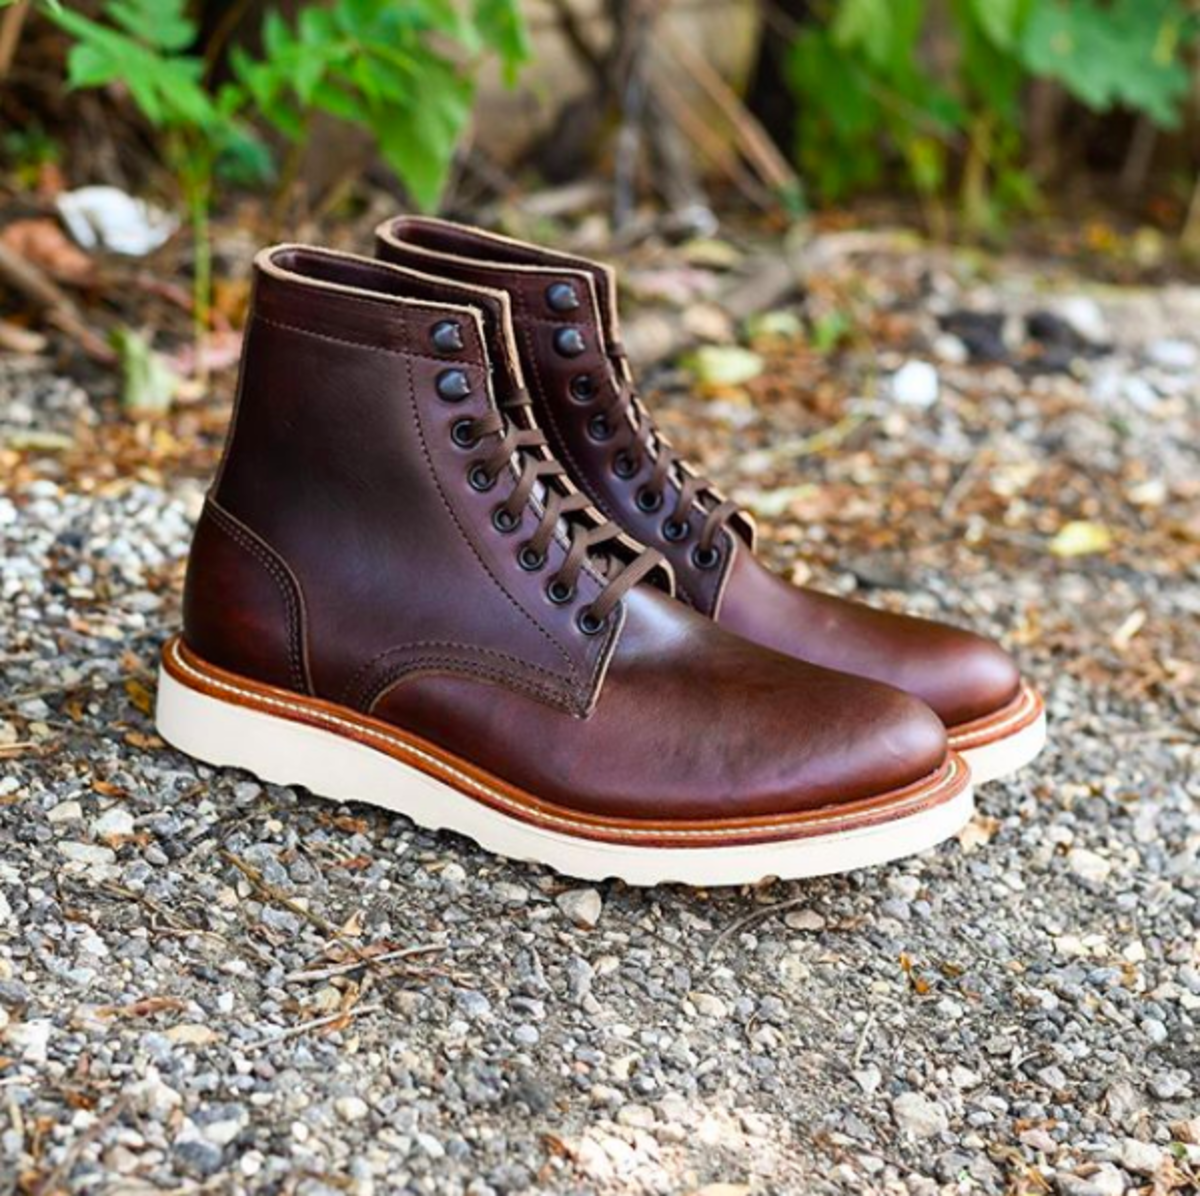 Oak_Street_x_ButterScotch_-_93_Vibram_Trench_Boot_1024x1024@2x